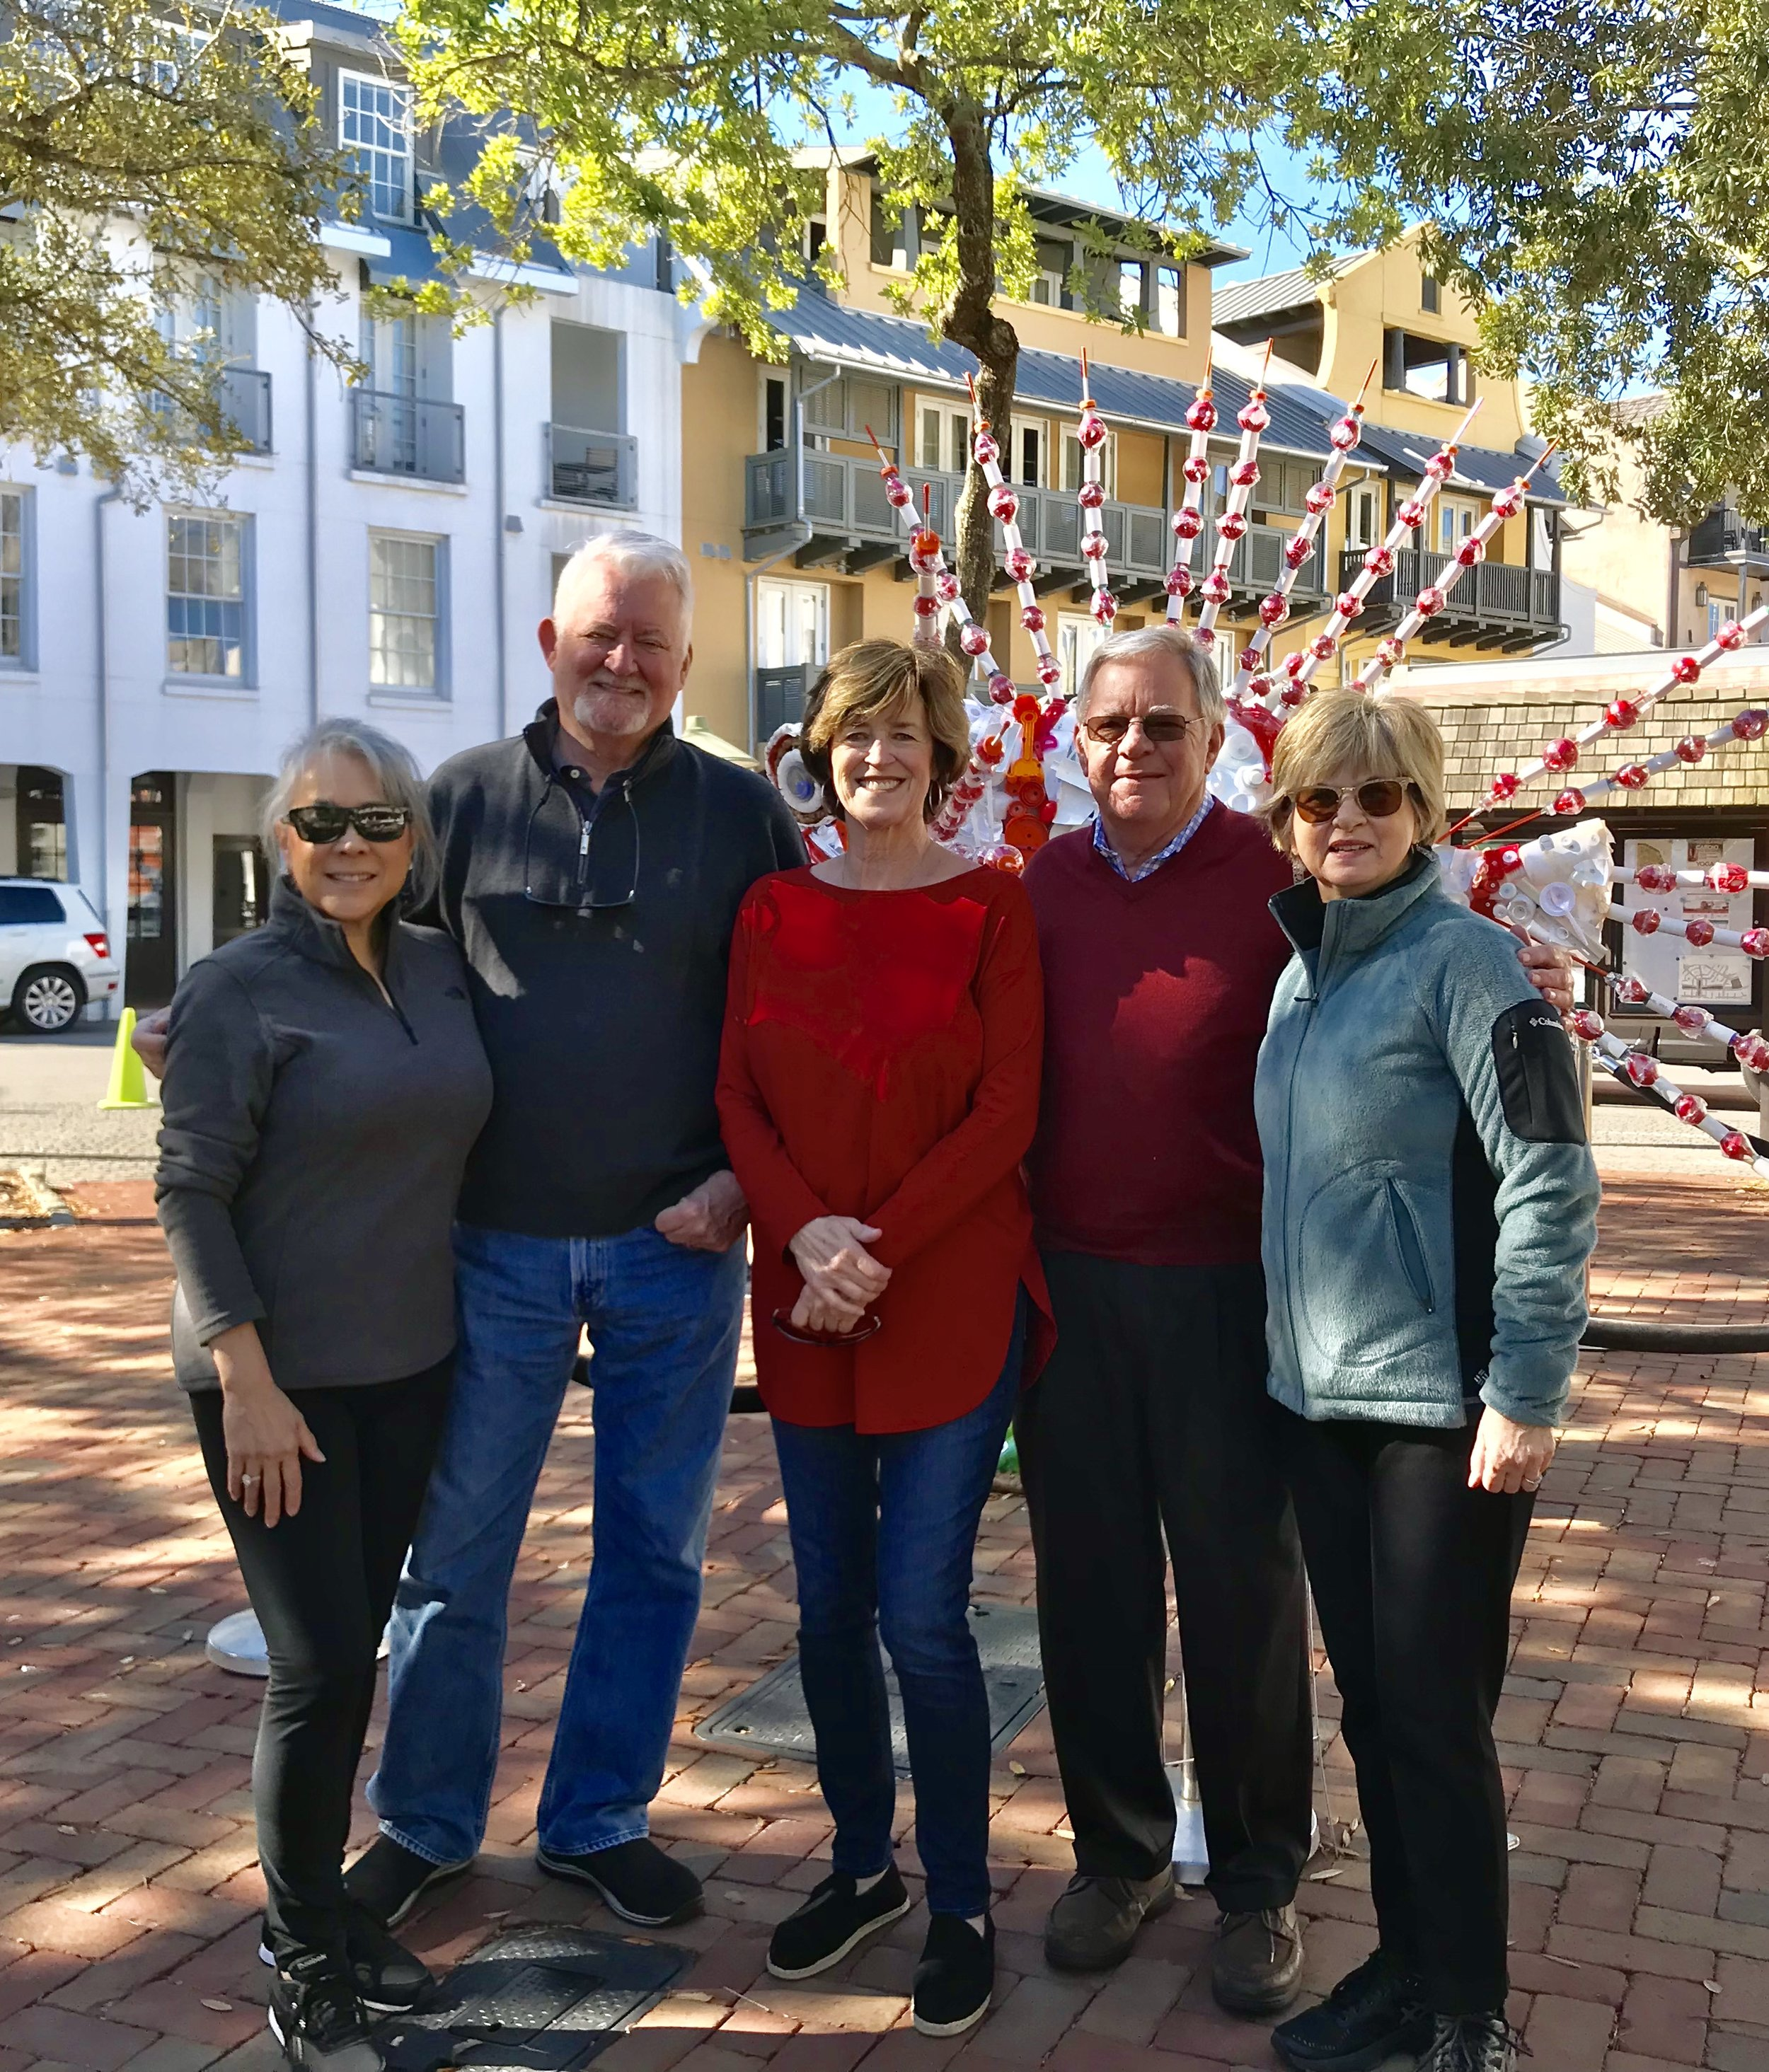 EARTH DAY, April 22, 2019. The Rosemary Beach Sculpture Exhibition Committee at the unveiling of  Invasive,  the Lionfish sculpture. Pictured above, from left, Victoria Lee, Lawrence Pugh, Linda Gifford, Project Director Thomas Kramer, and Marsha Aldridge King.